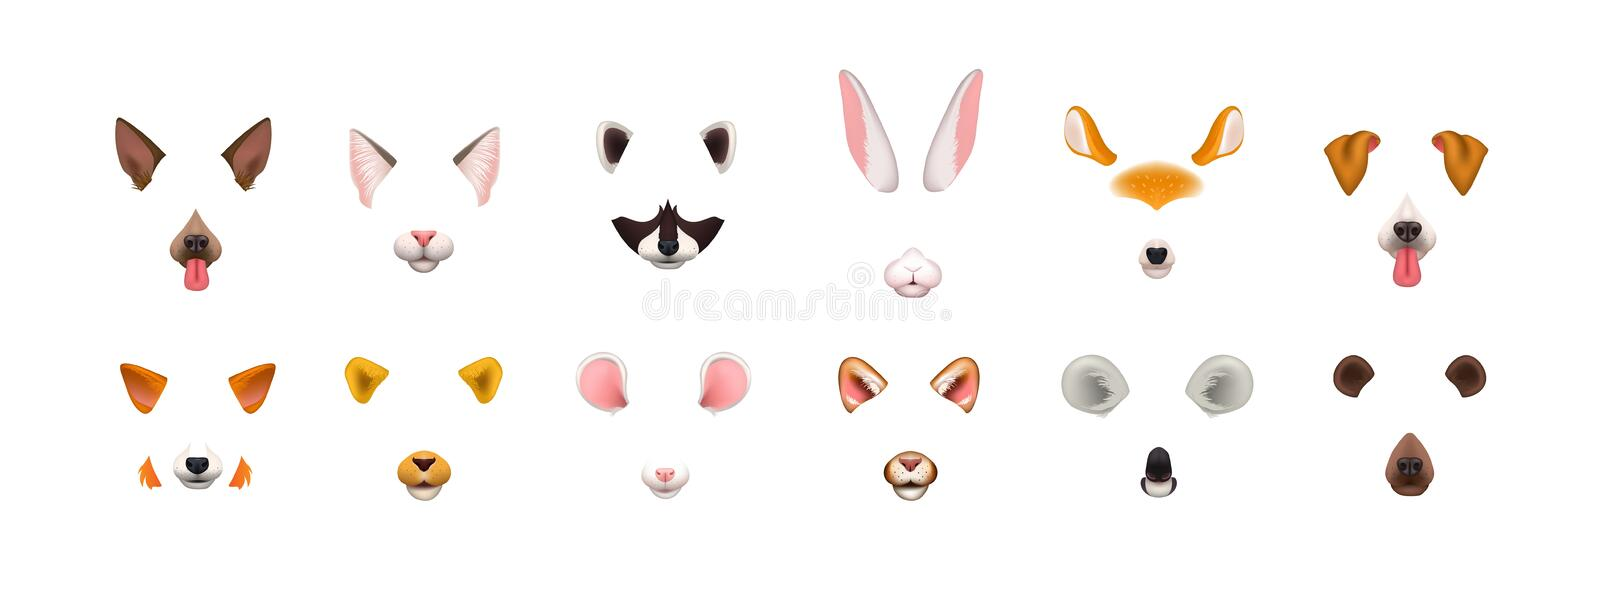 Collection of video chat application effects. Bundle of cute and funny faces or masks of various animals - dog, cat, fox royalty free illustration